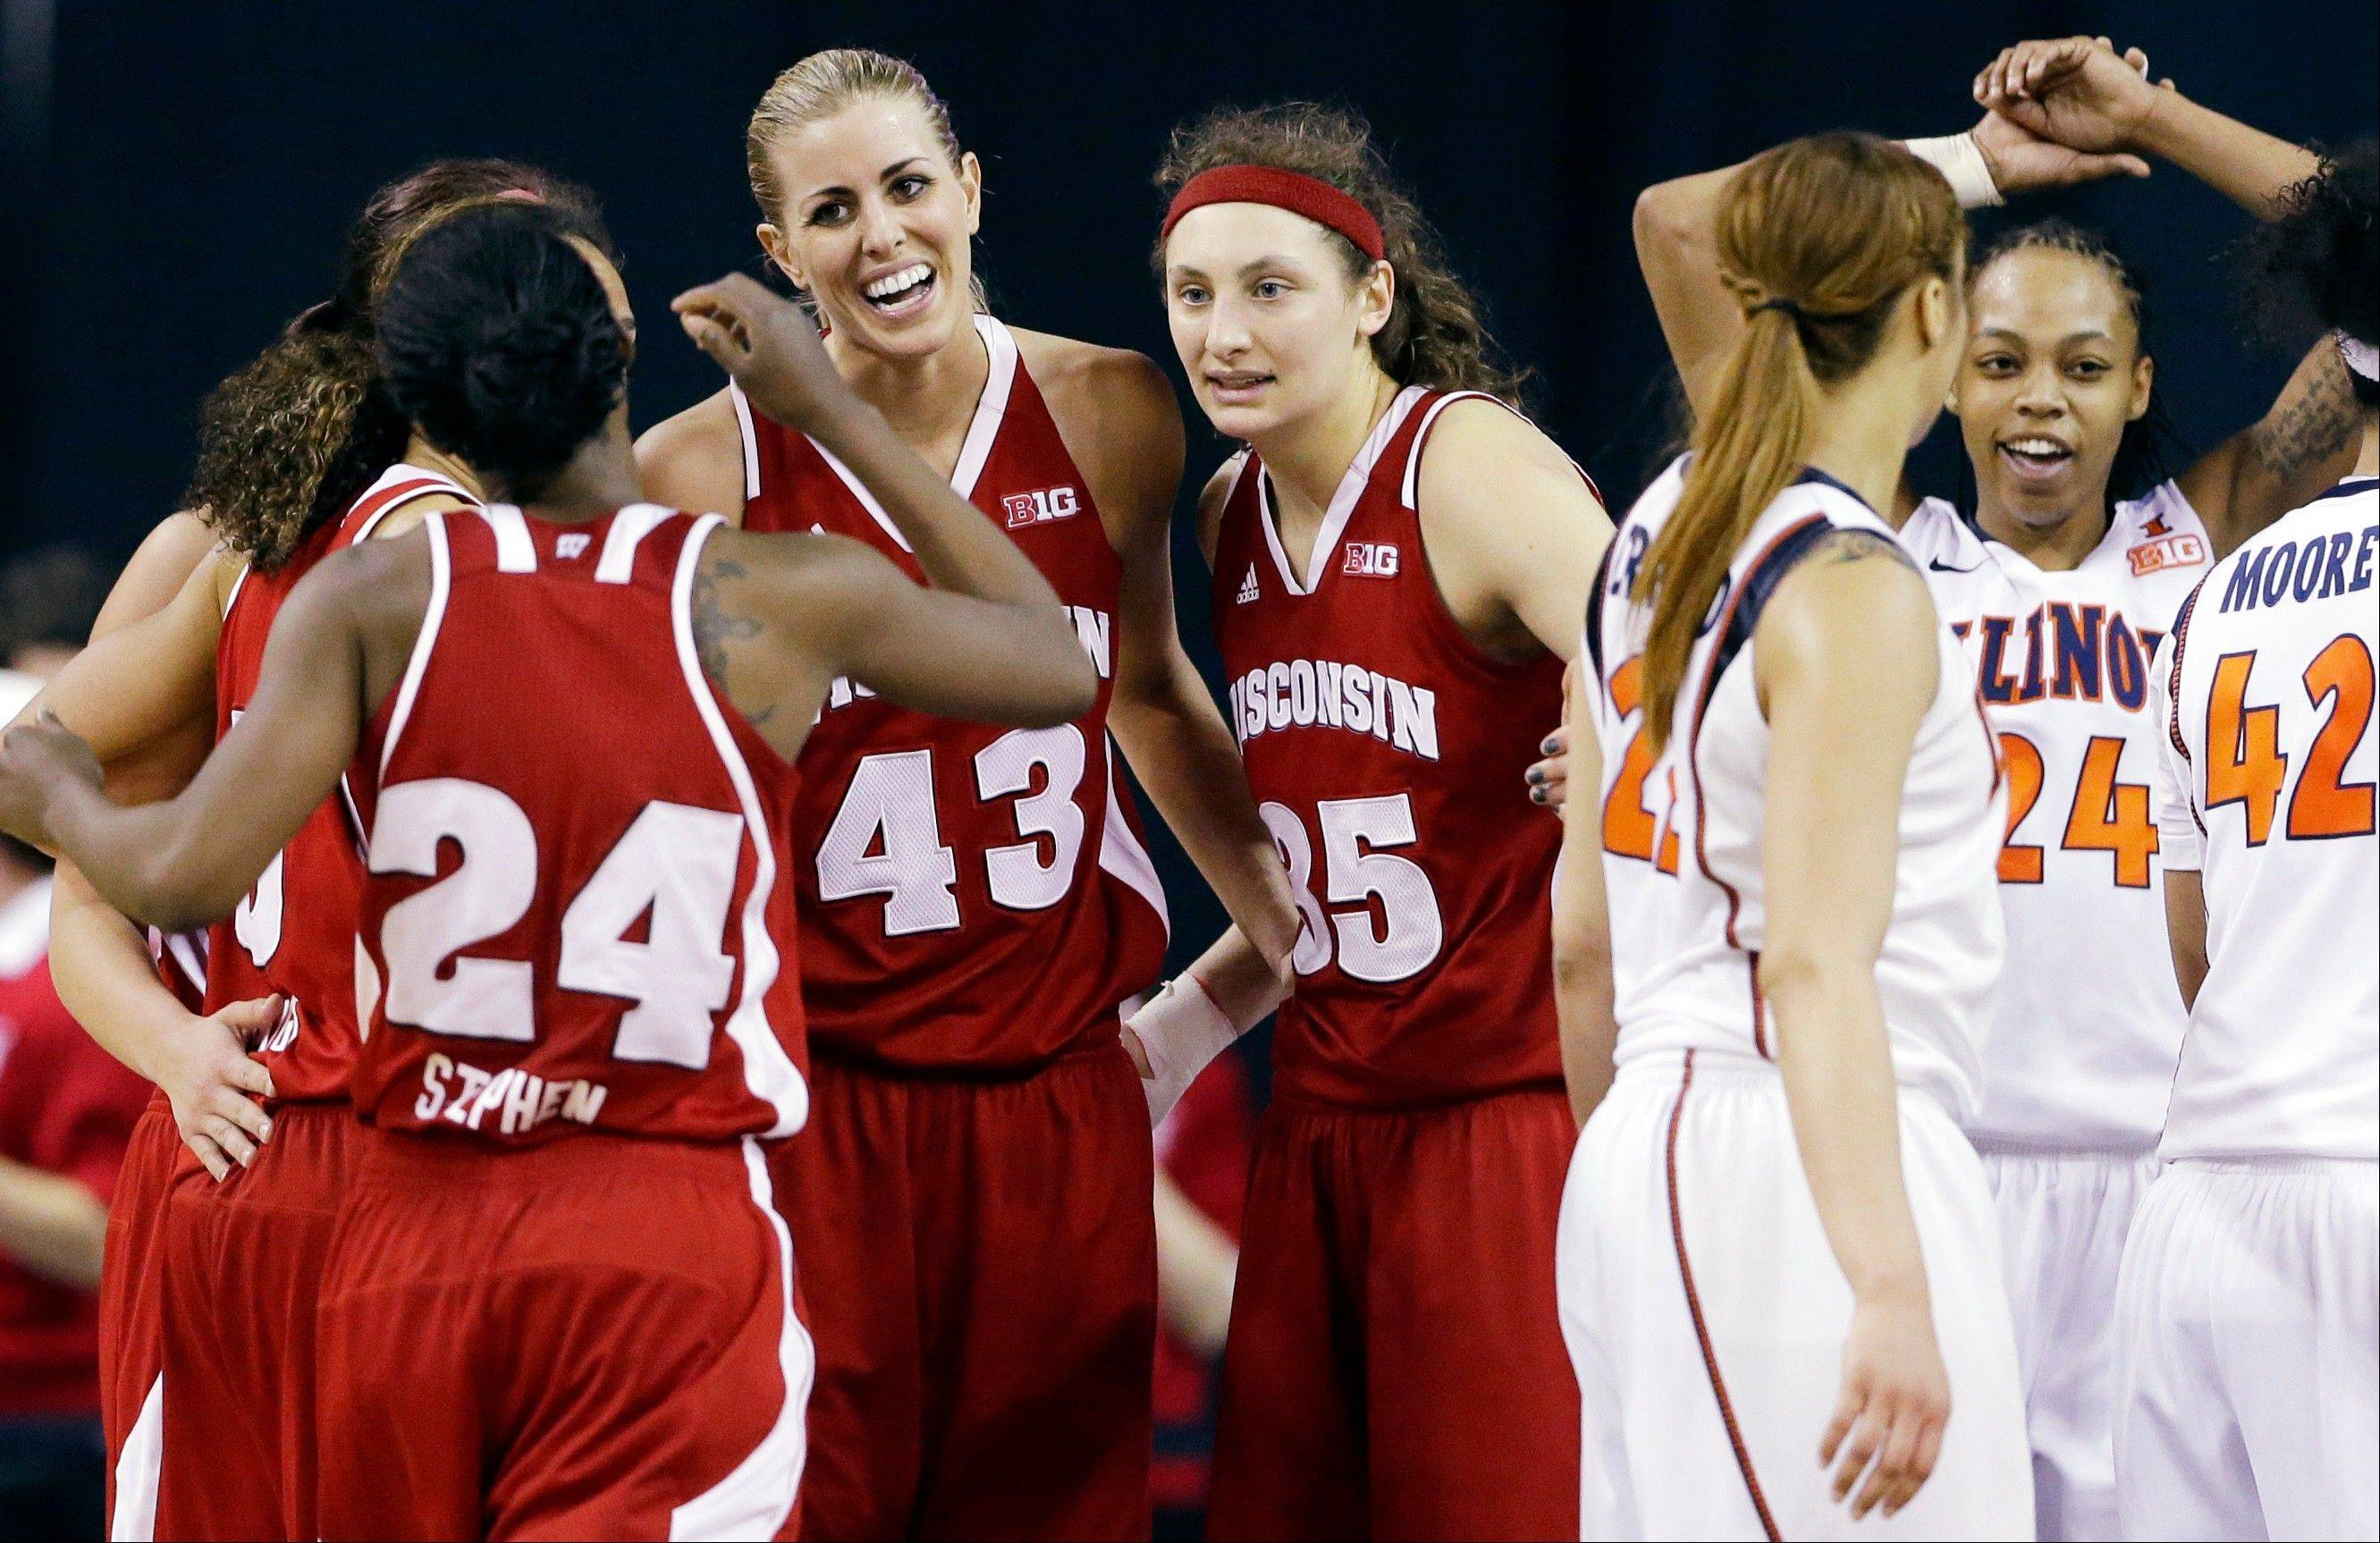 Images: Wisconsin vs Illinois, Big Ten Women's Basketball